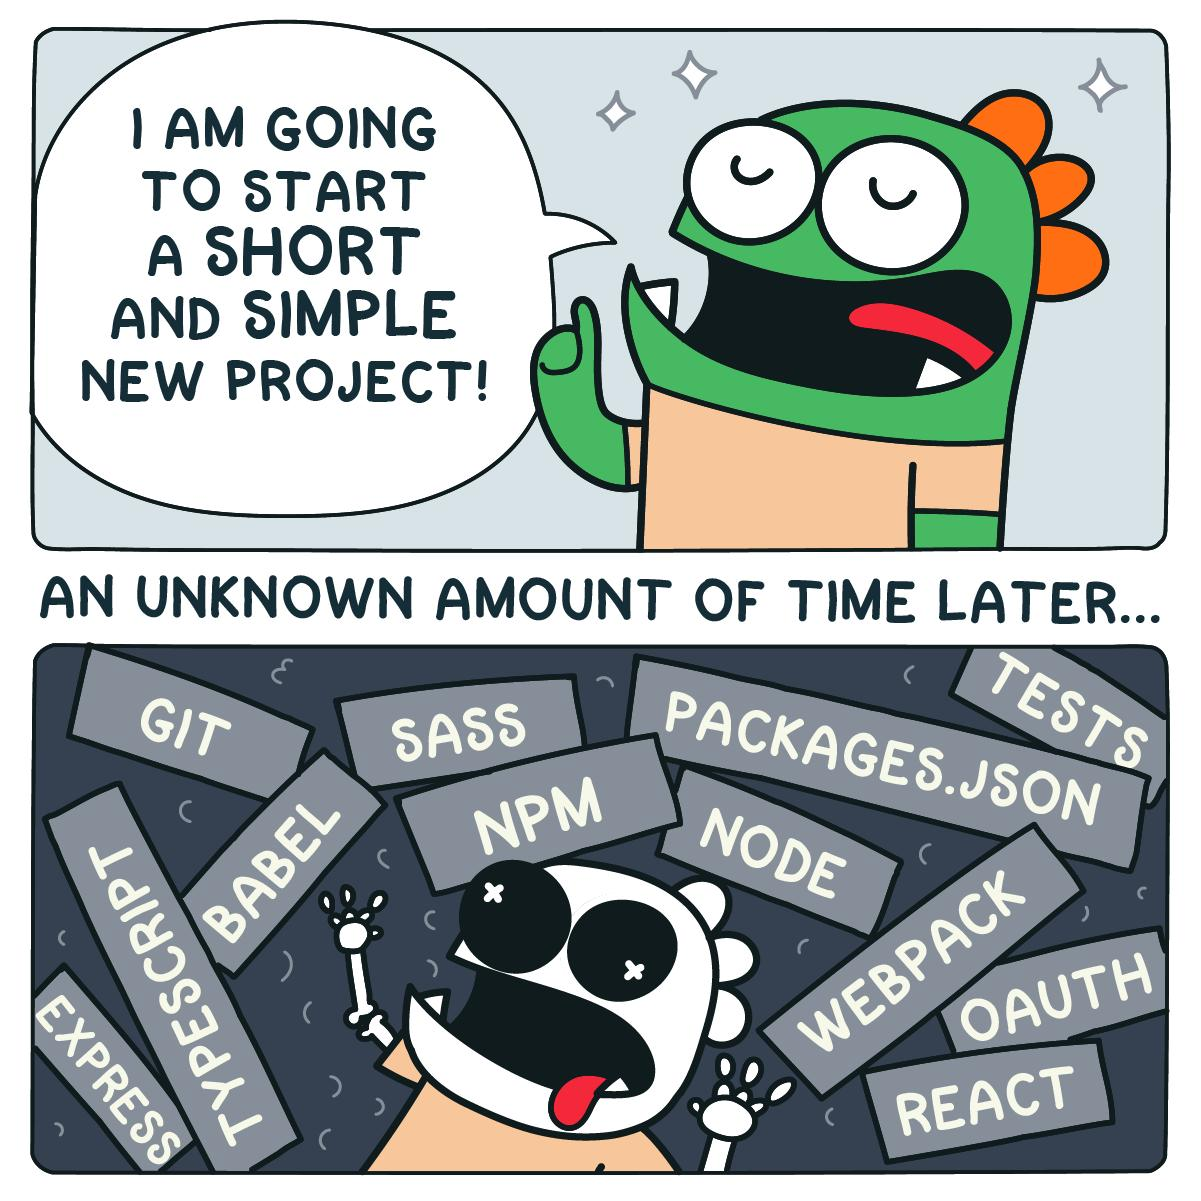 Comic with two panes, first a protagonist eagerly declaring they will start a short simple project, second an unknown time later the protagonist is overwhelmed by a plethora of tools, frameworks, technologies. Source: https://twitter.com/garabatokid/status/1111583391705690112